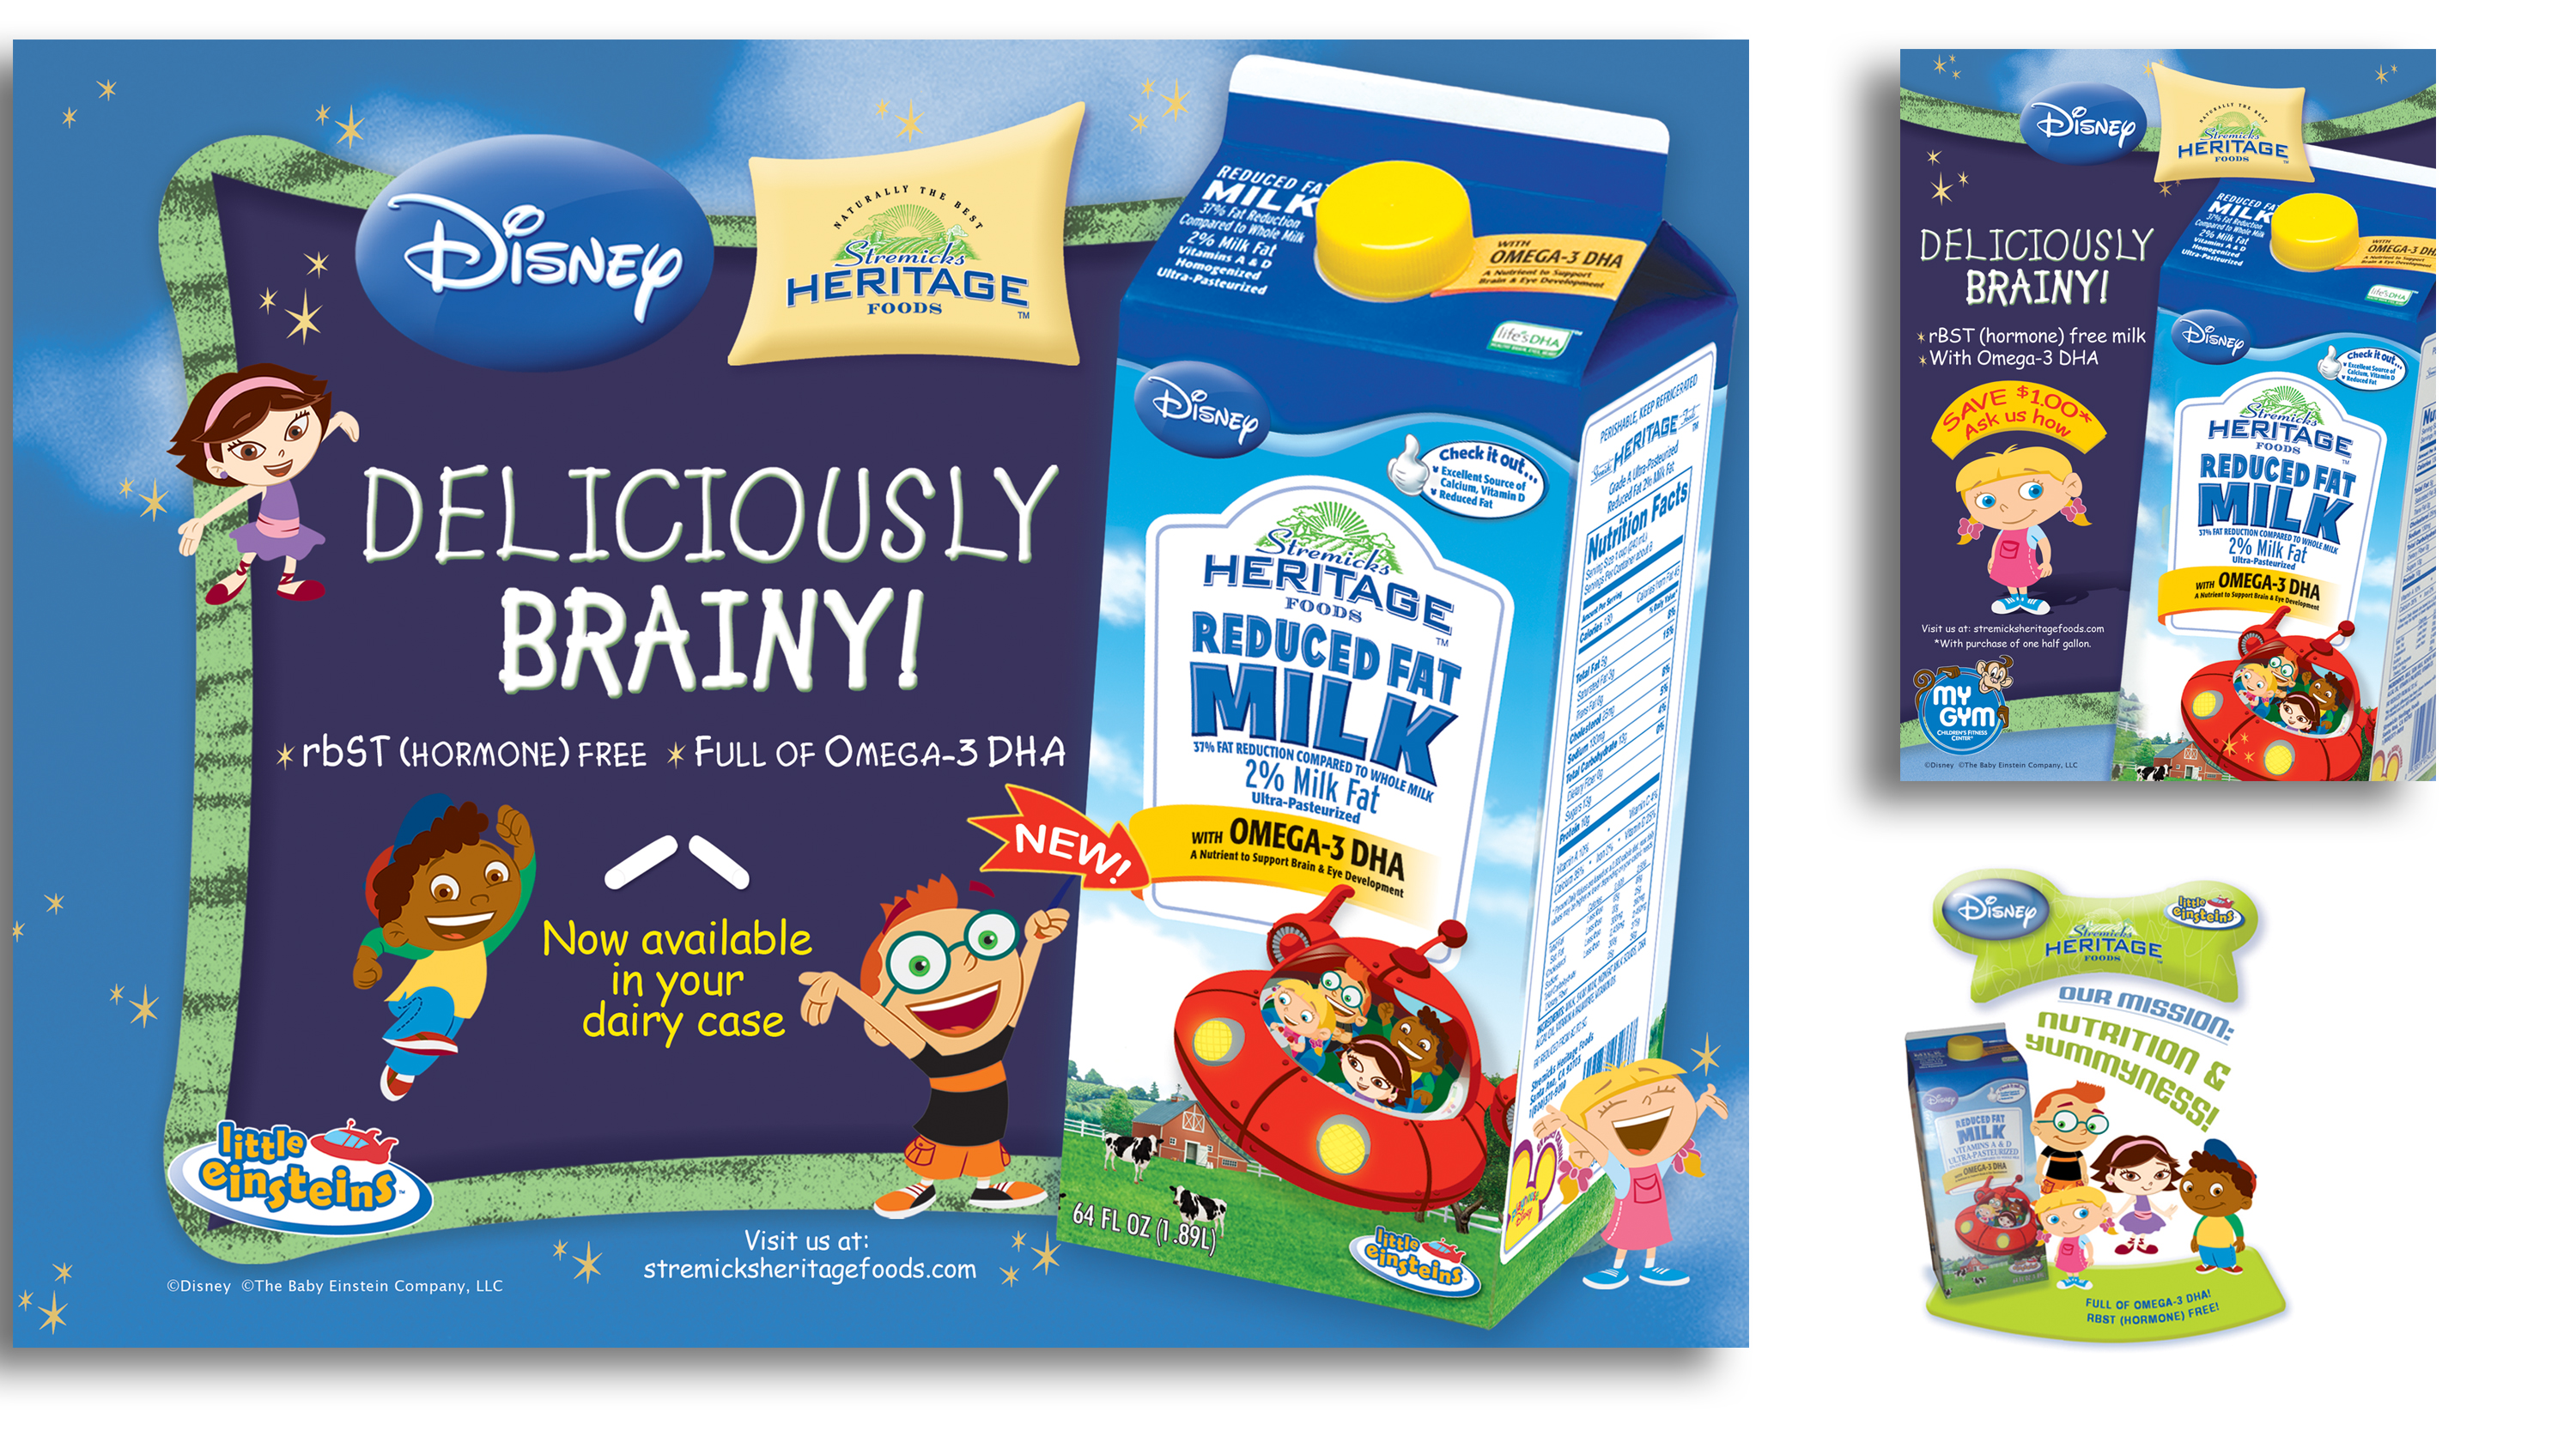 Disney's Little Einsteins and Stremicks Heritage Foods Co-op  packaging design